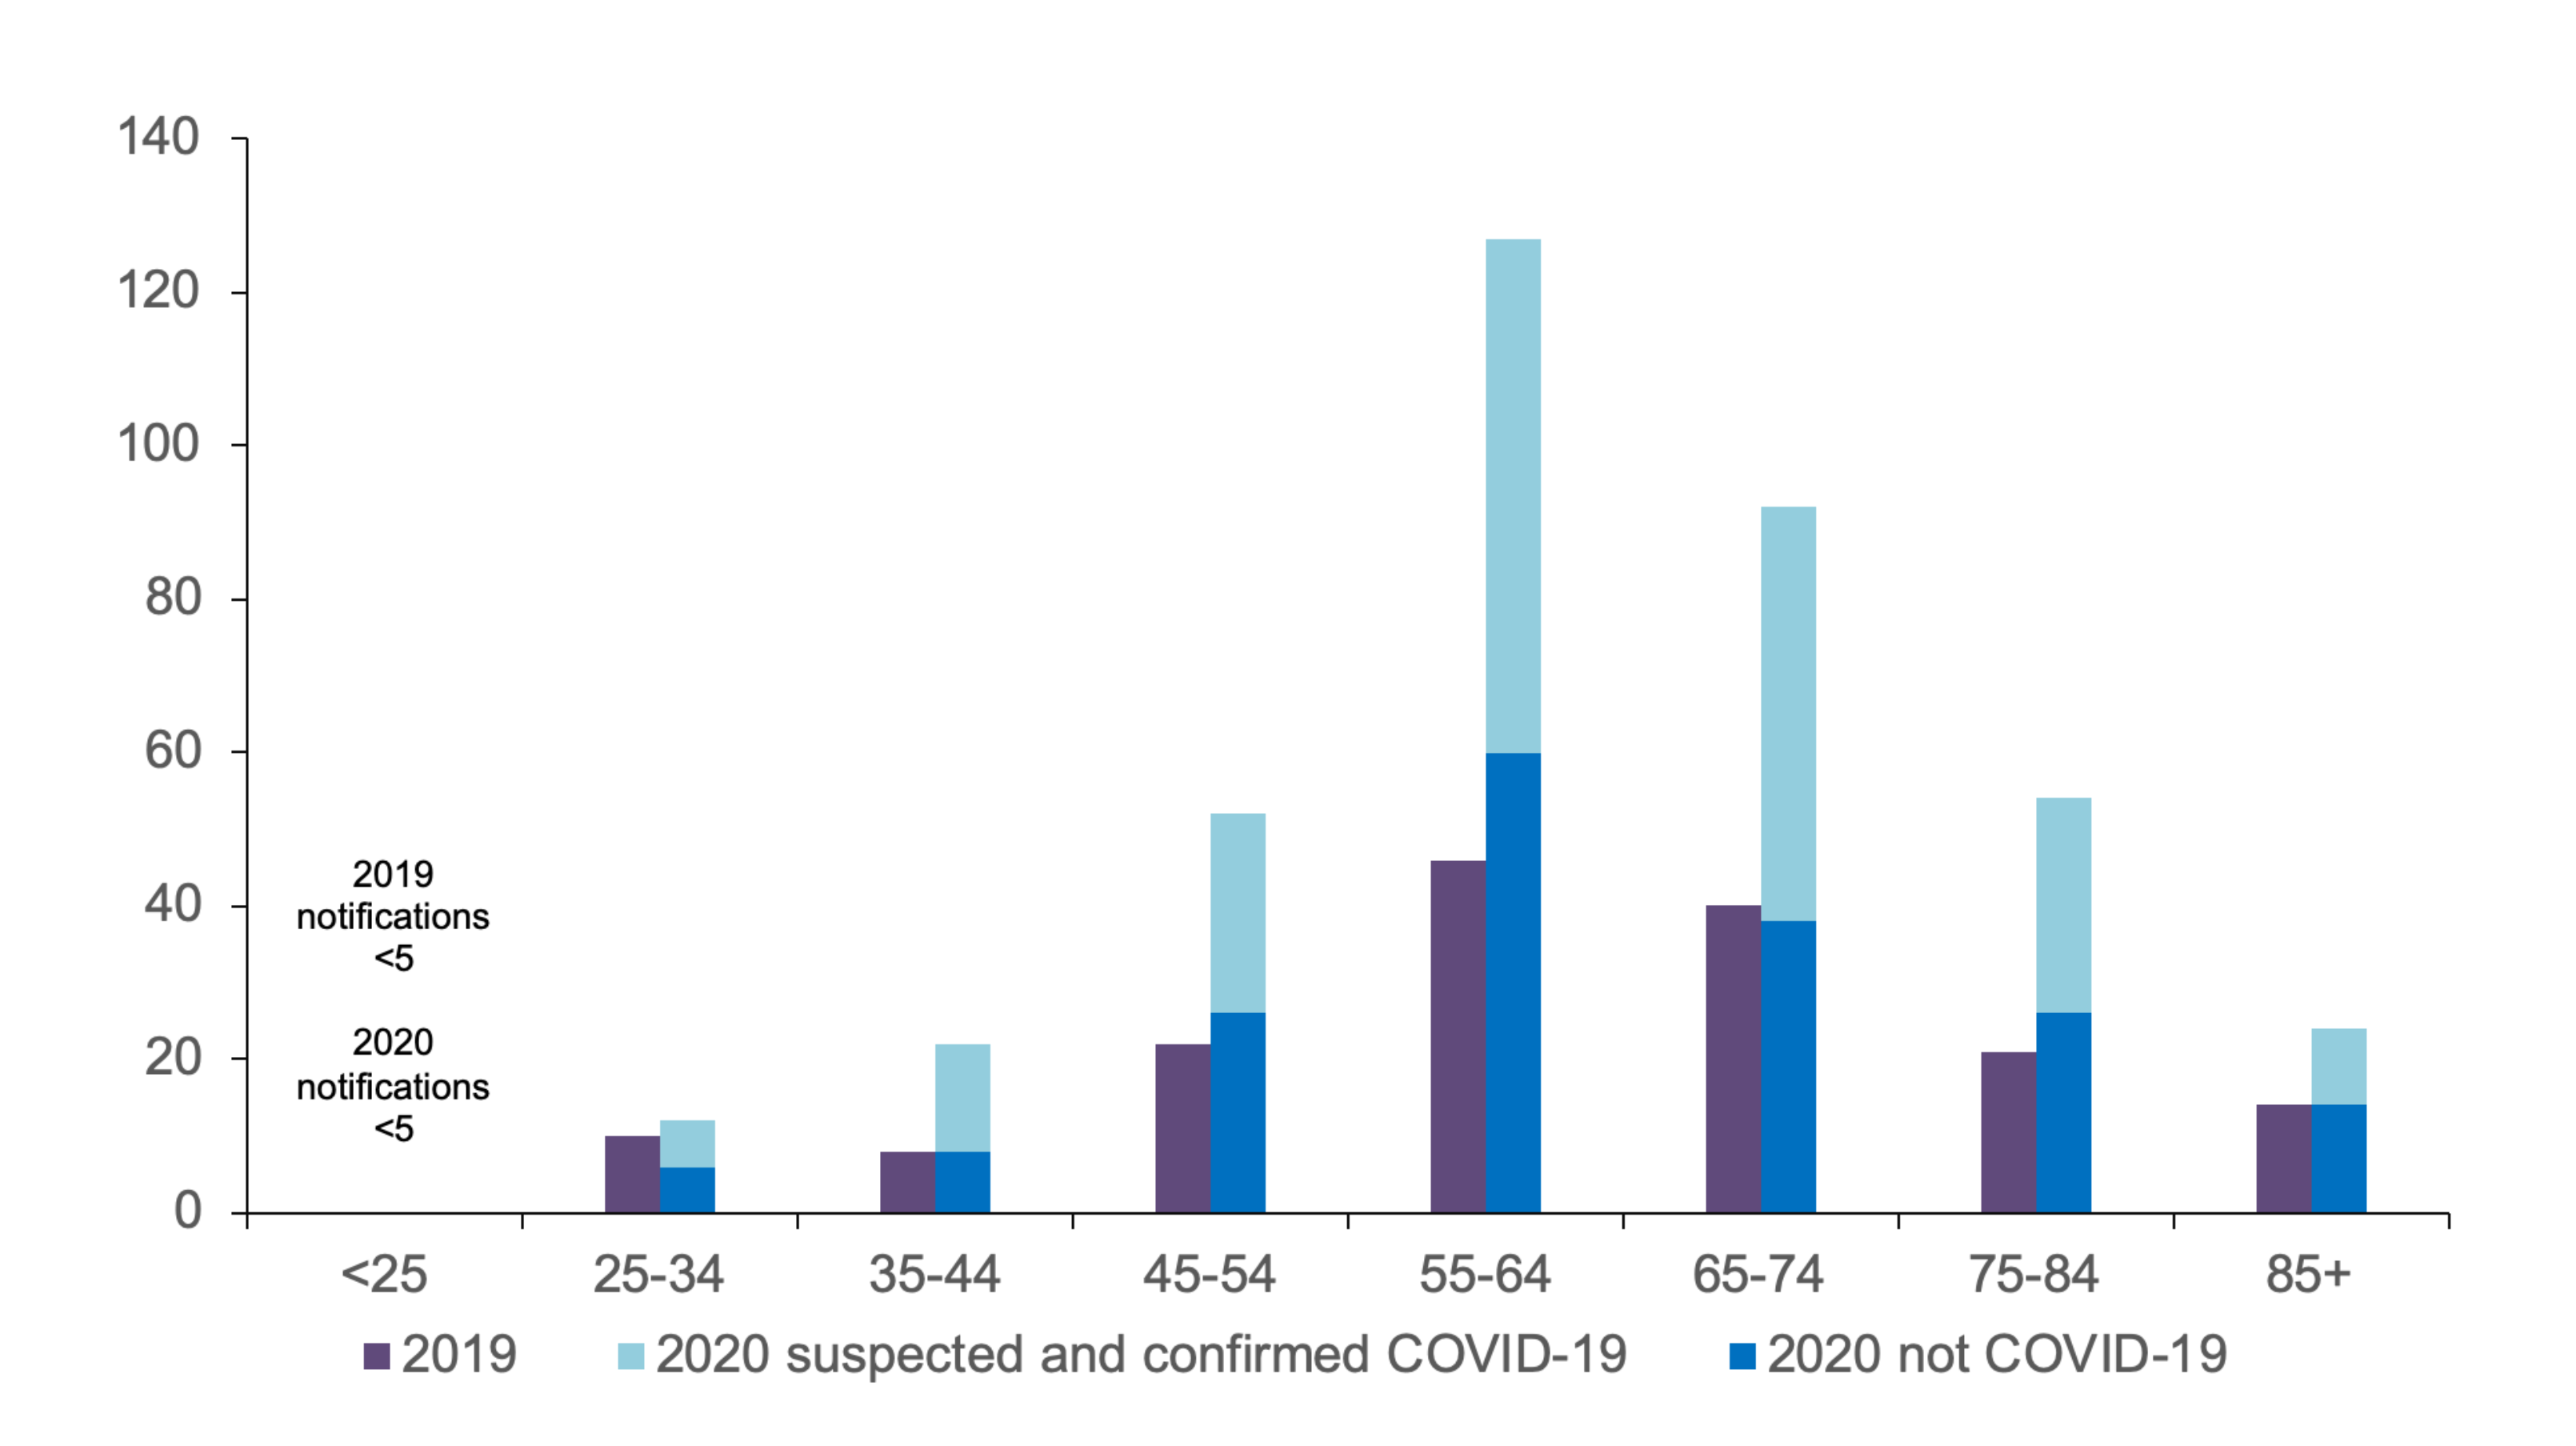 chart showing the number of deaths of people with a learning disability, comparing deaths in 2019 with deaths in 2020, dividing the 2020 deaths between those not related to COVID-19 and suspected and confirmed COVID-19 cases